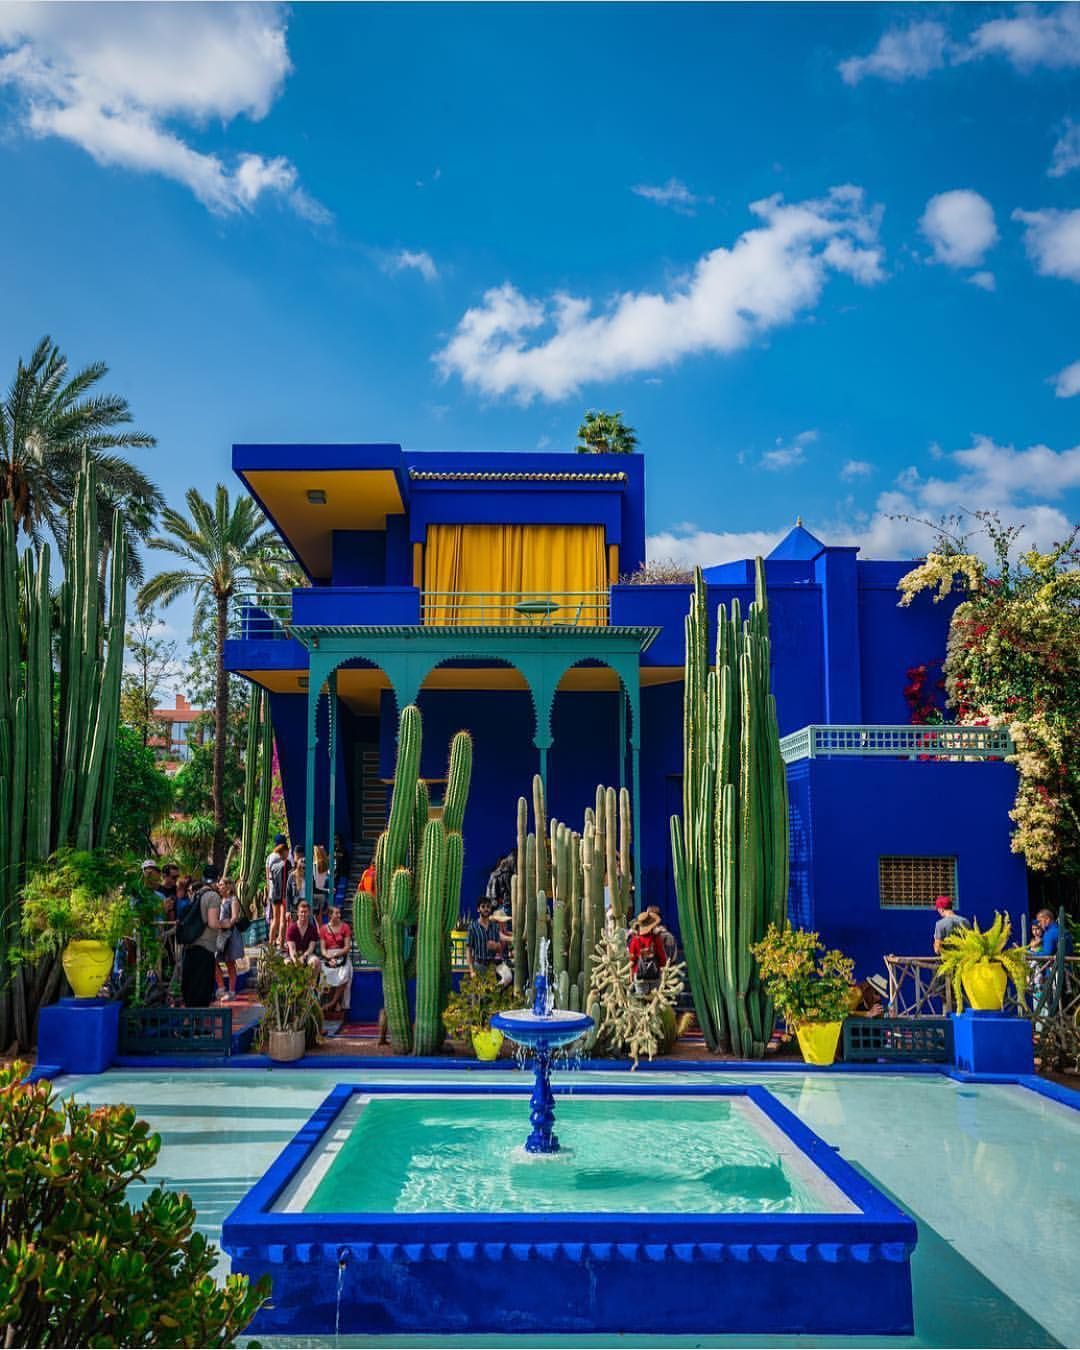 Jardin Majorelle Marrakech Élégant A Little Moroccan Beauty for This Amazing Day 🙌🏼💙💛a Of 85 Beau Jardin Majorelle Marrakech